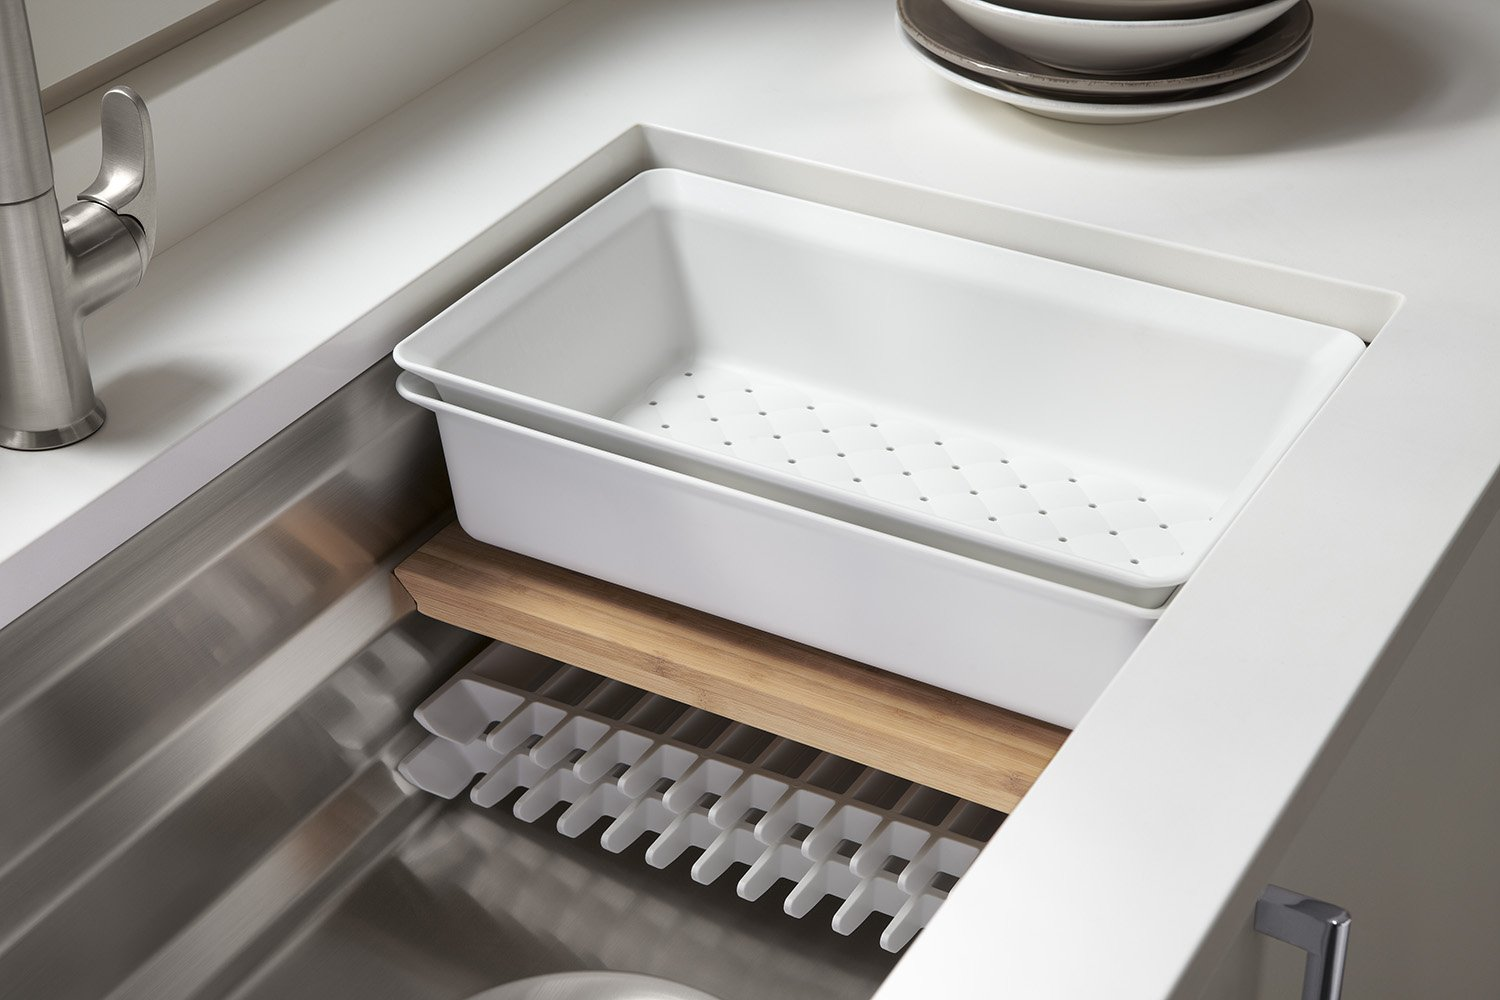 KOHLER Prolific 33 inch Workstation Stainless Steel Single Bowl Kitchen Sink with included Accessories, 11 inches deep, 18 gauge, Undermount installation K-5540-NA by Kohler (Image #6)